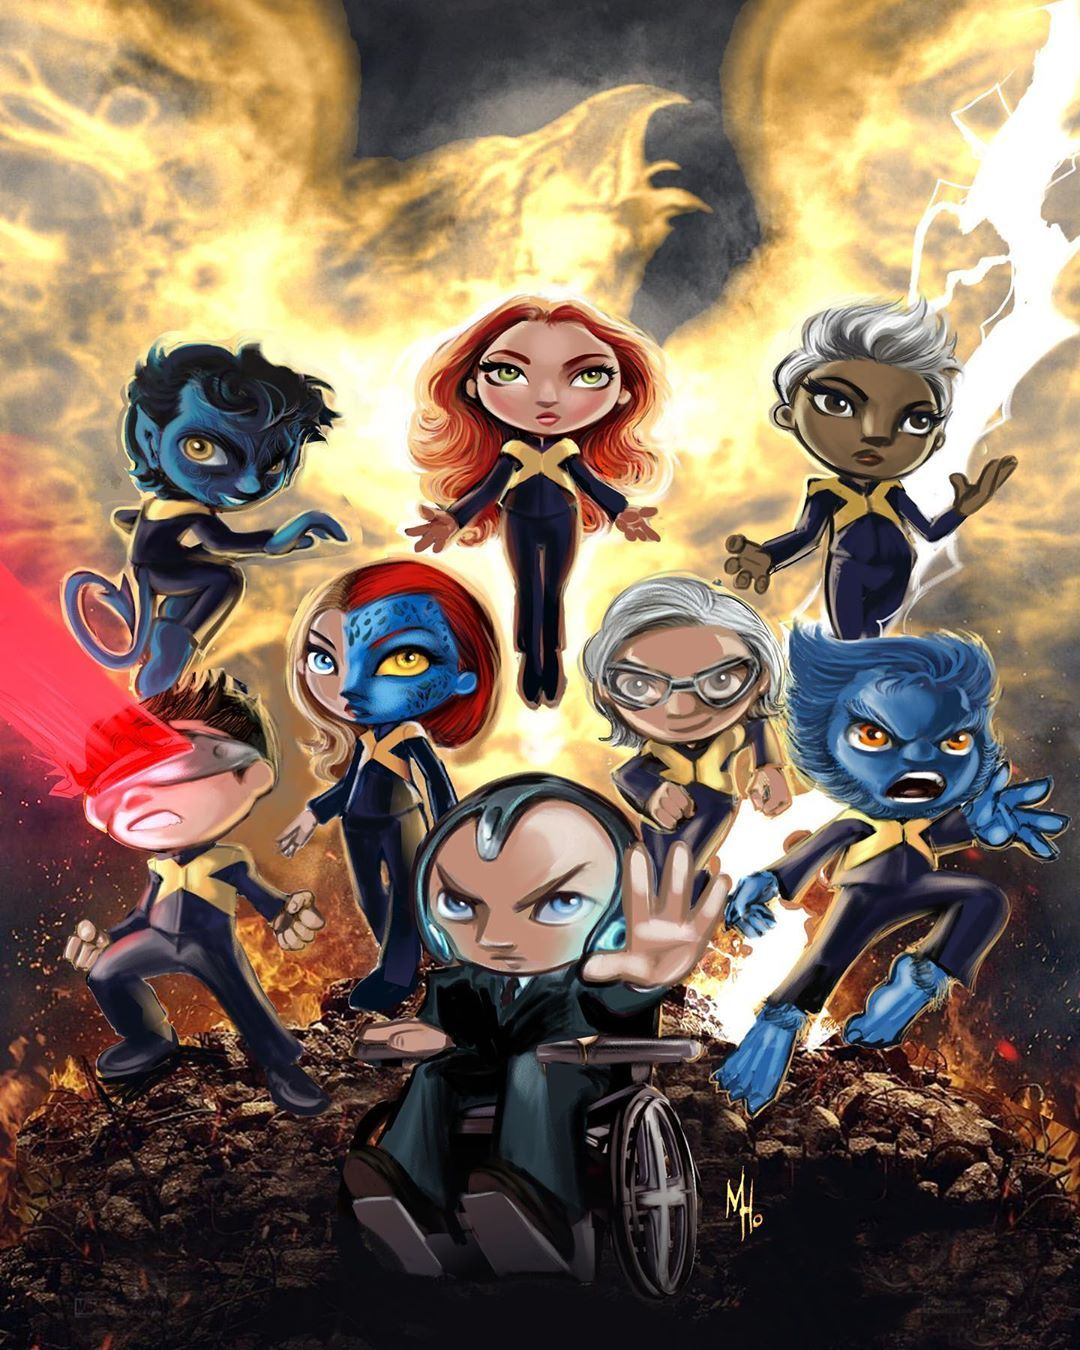 X Men On Instagram X Men Dark Phoenix Phoenix Mystique Storm Nightcrawler Cyclops Quicksilver Beast And Professor X Nightcrawler Dark Phoenix X Men